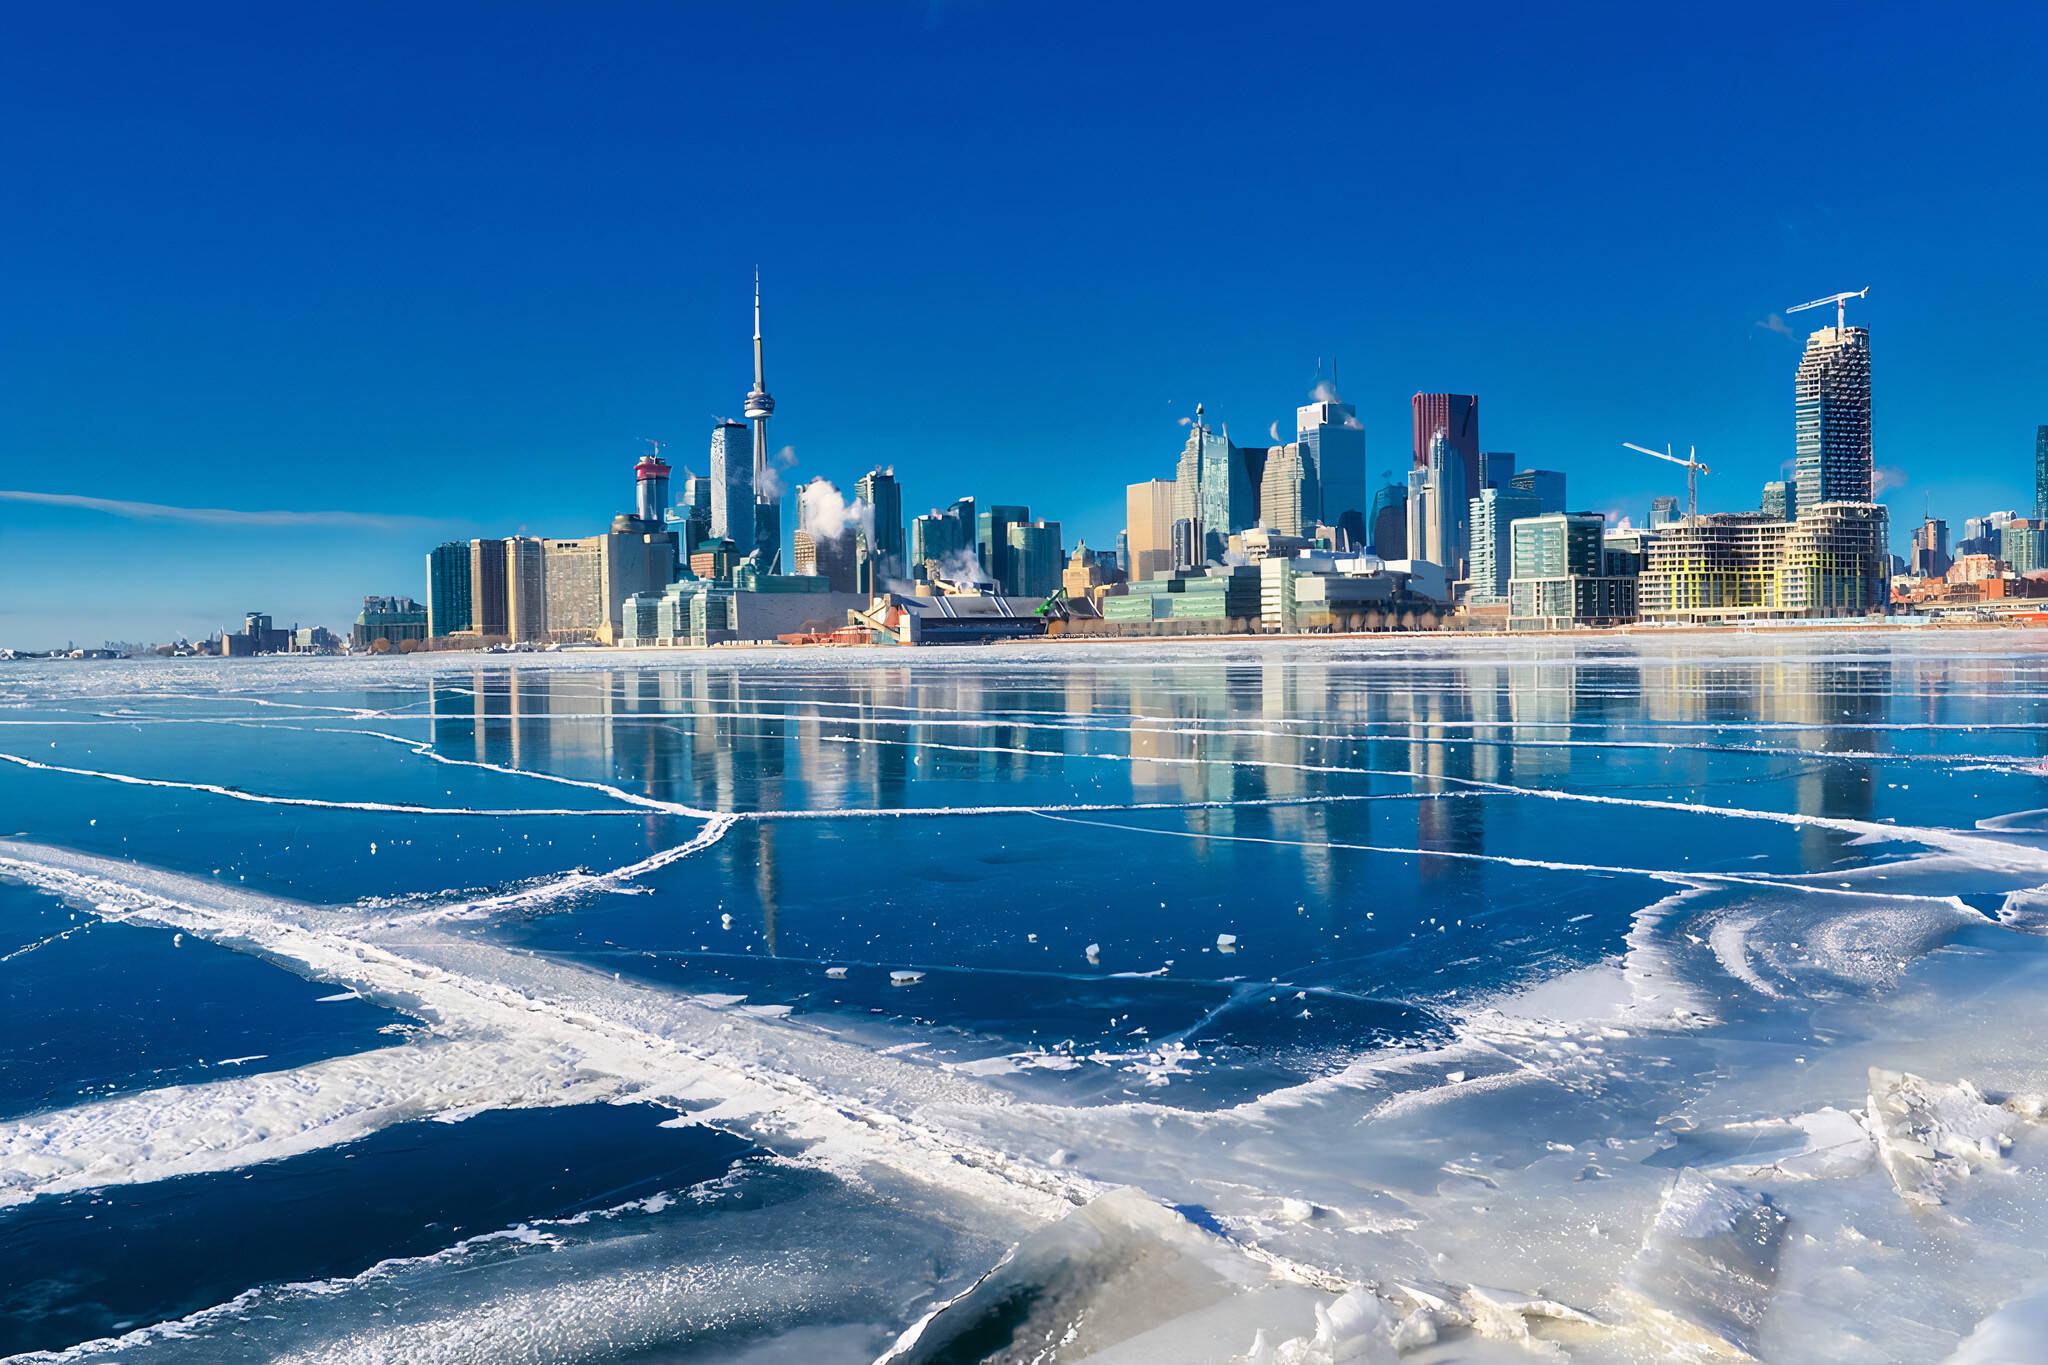 The coldest weather of the season so far is headed for Toronto next week